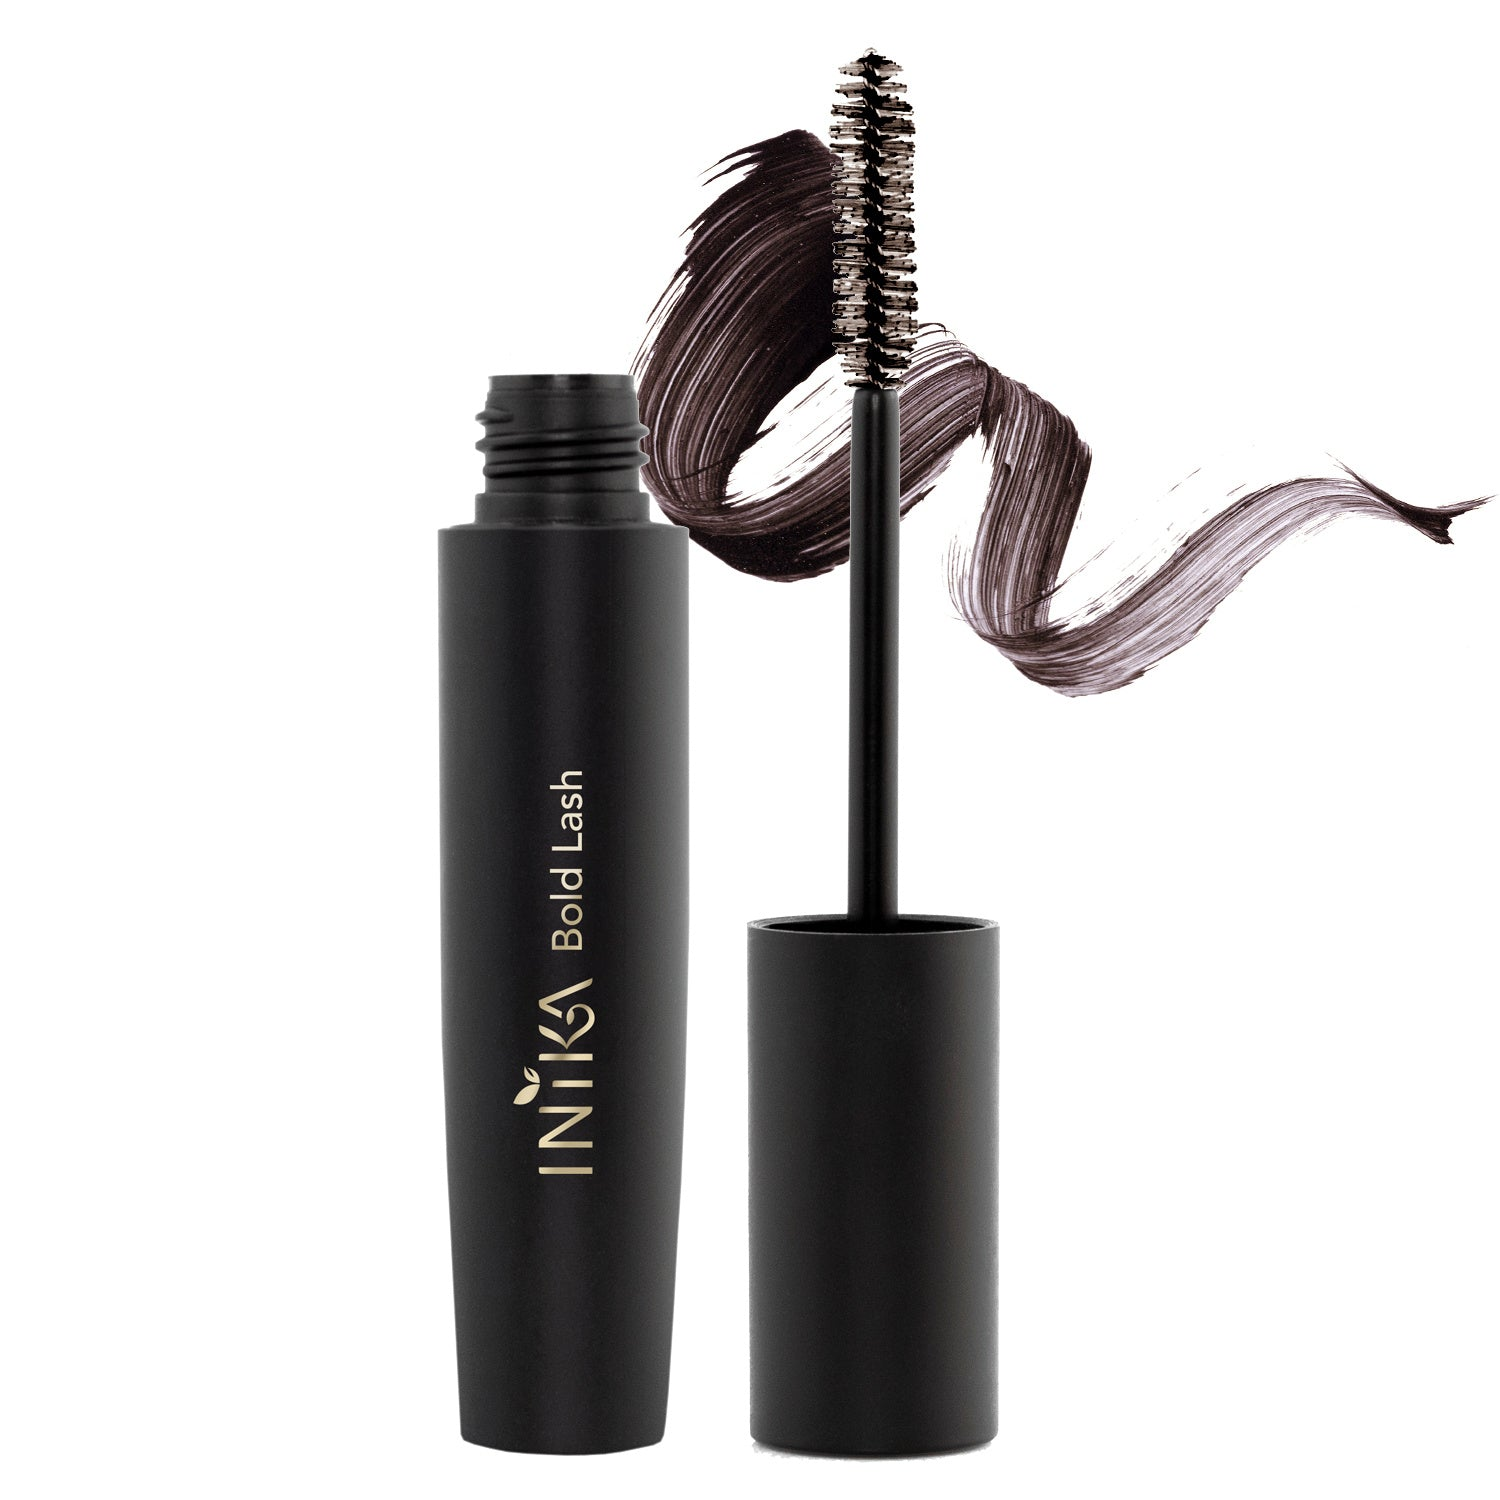 Inika Organic, bold lash vegan mascara, vegan mascara. Inika Organic, long lash vegan mascara, vegan mascara. The Long Lash Vegan Mascara is a luxurious formula that uses 100% plant-derived. Inika Organic, long lash vegan mascara, vegan mascara, inika organics, nourished, natural mascara, natuurlijke mascara.